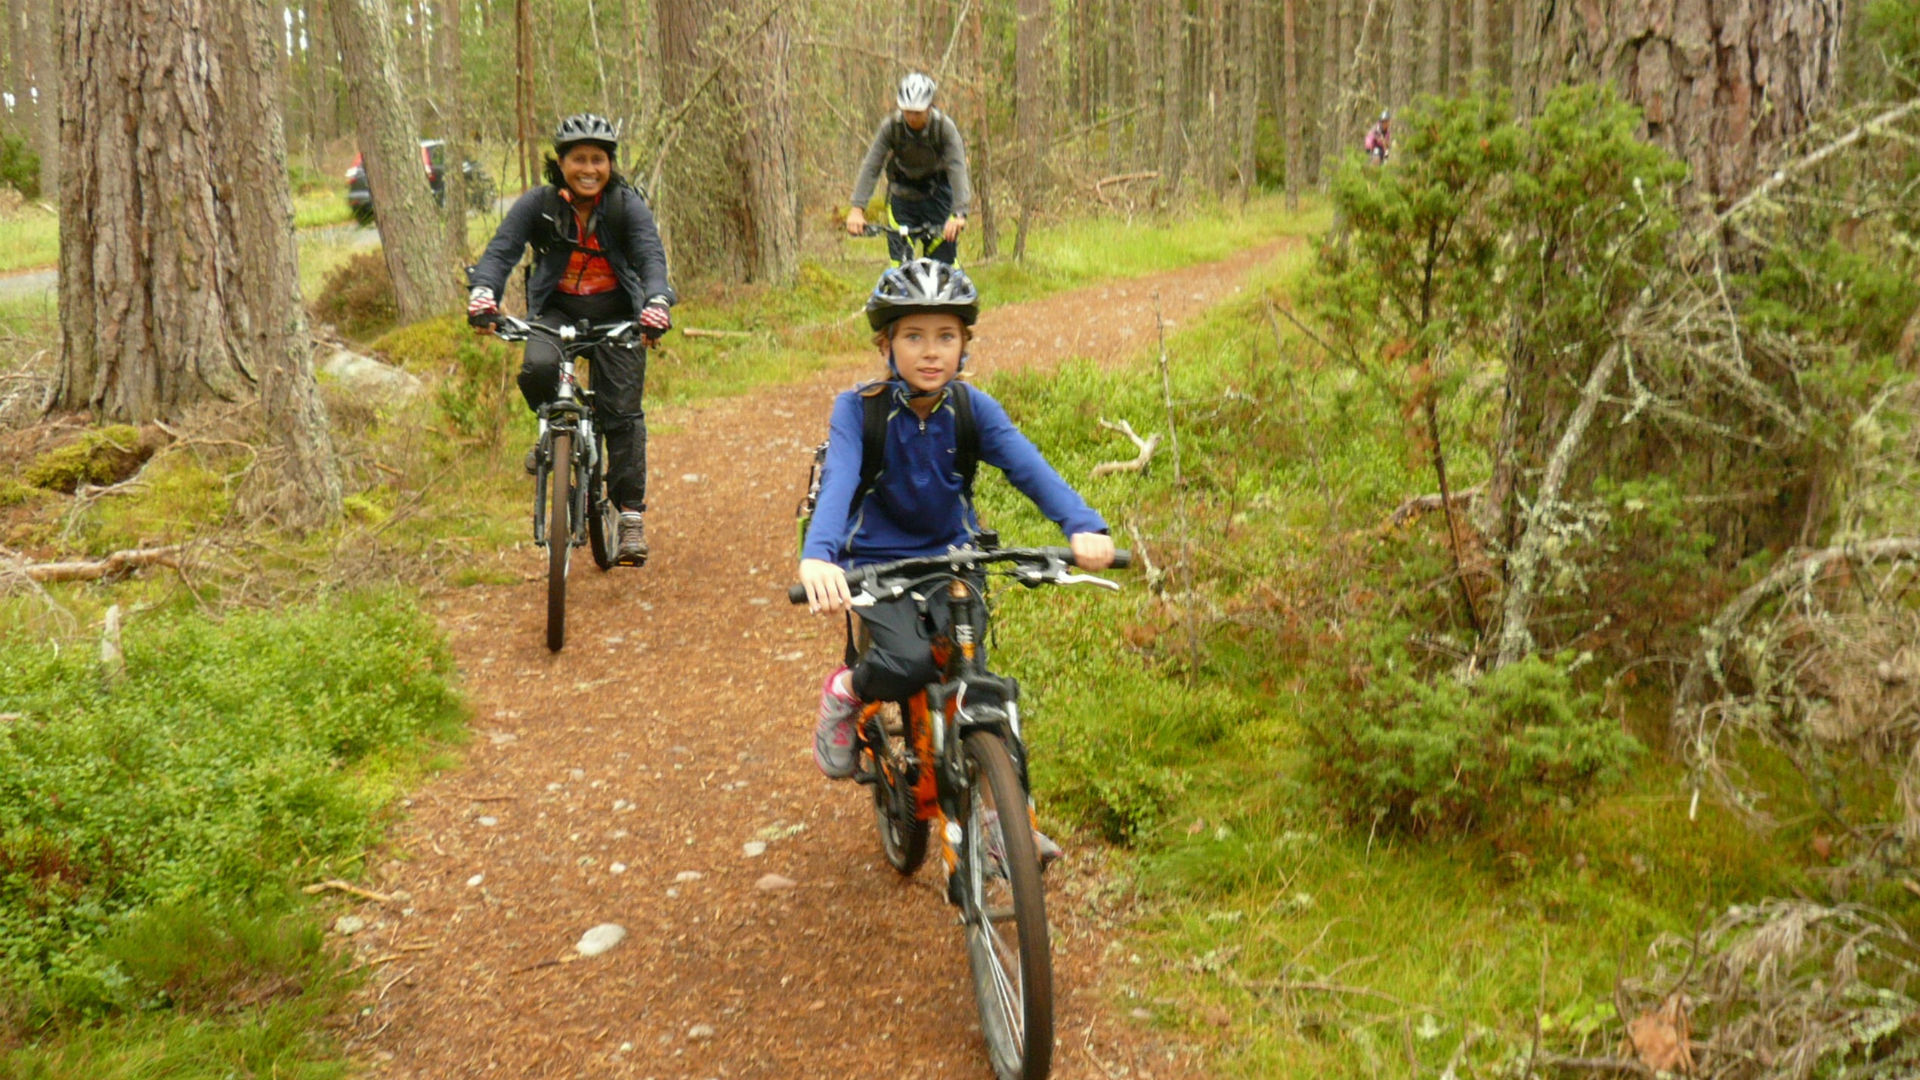 Family biking in Scotland